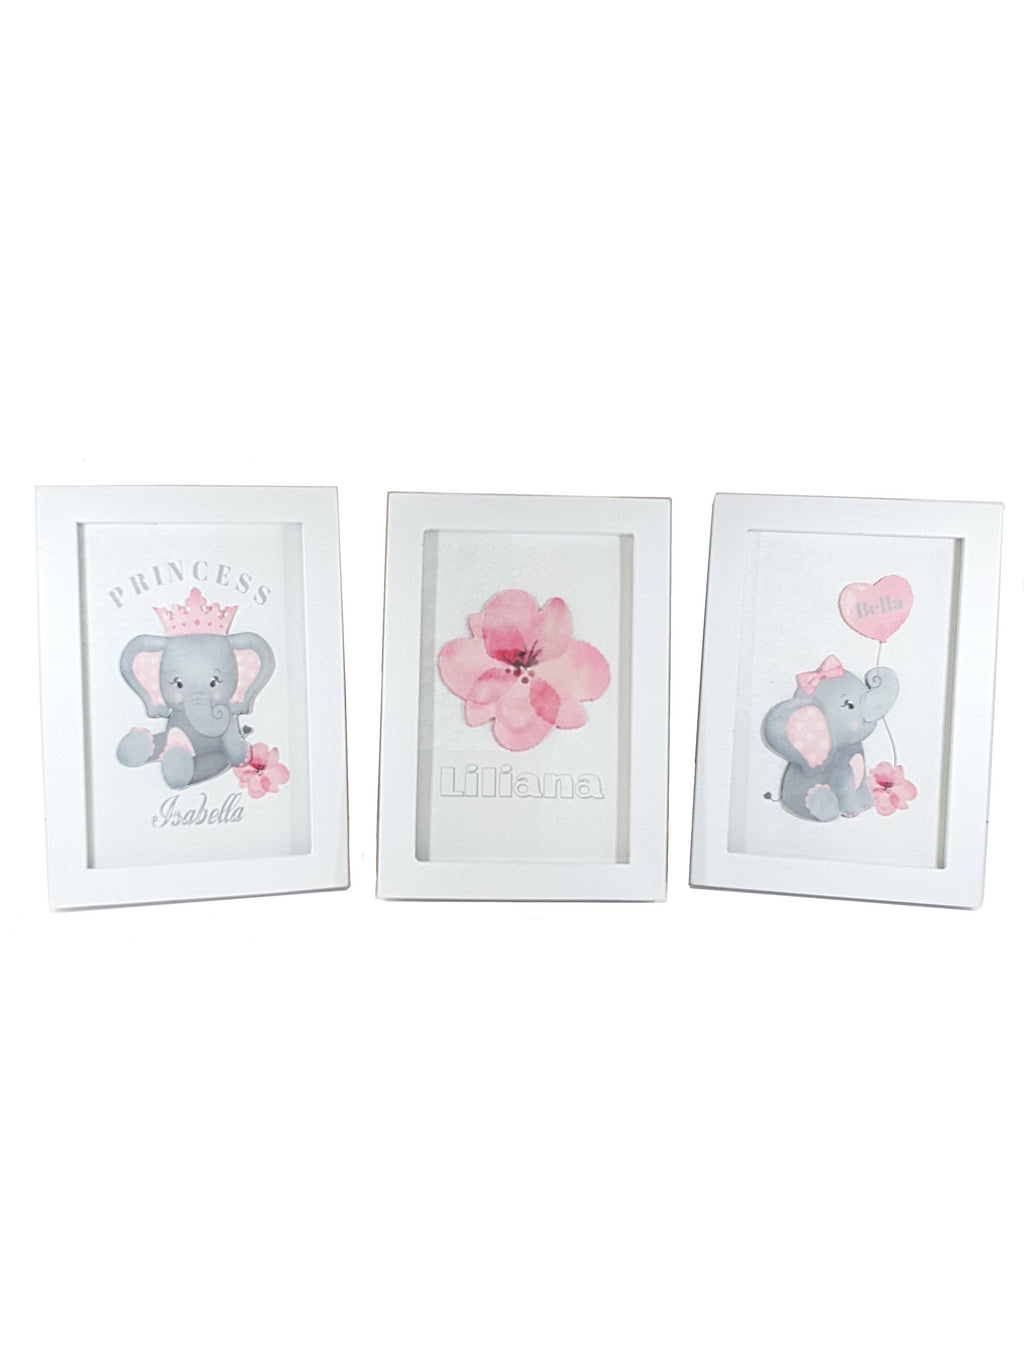 Mix and Match Coordinating Personalized Framed White Prints of Elephants